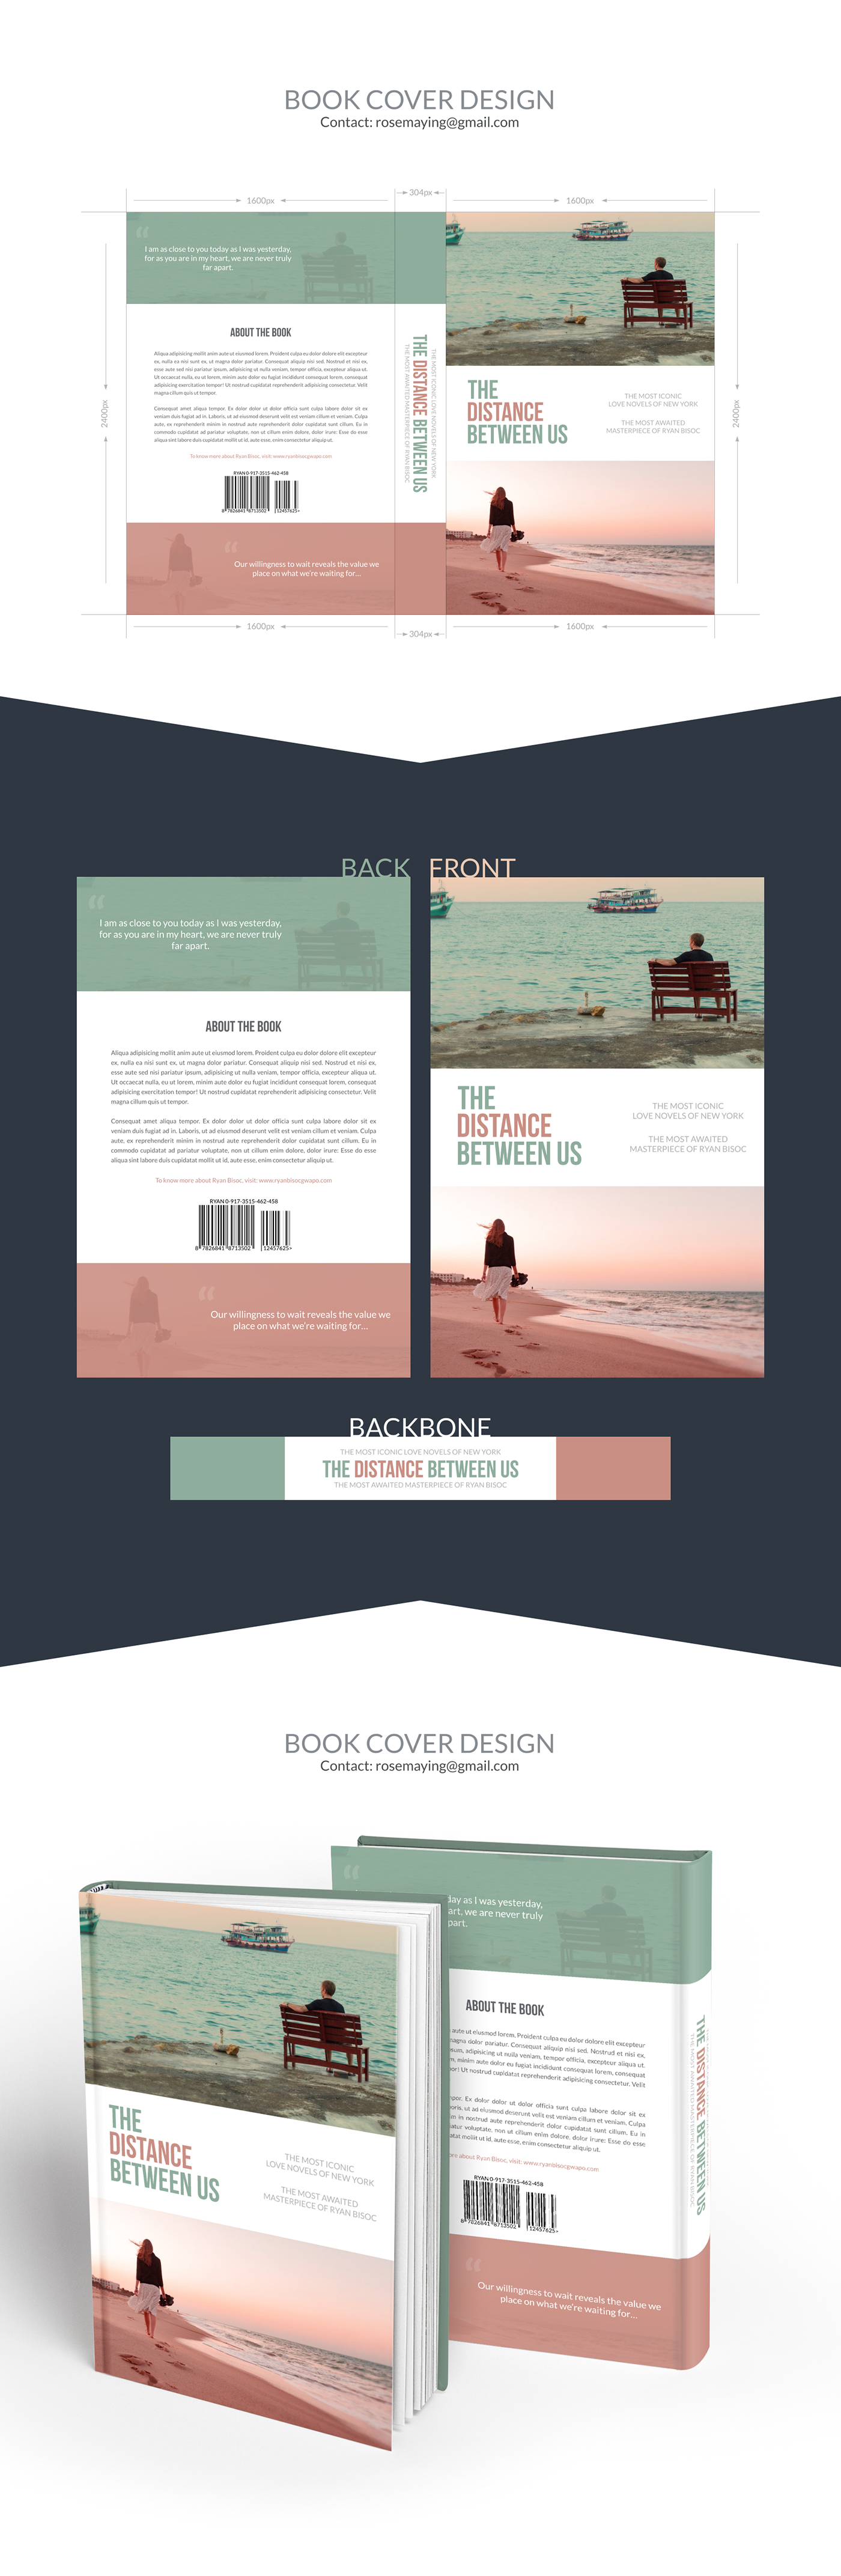 Design book covers online - Check Out My Behance Project Book Cover Design Https